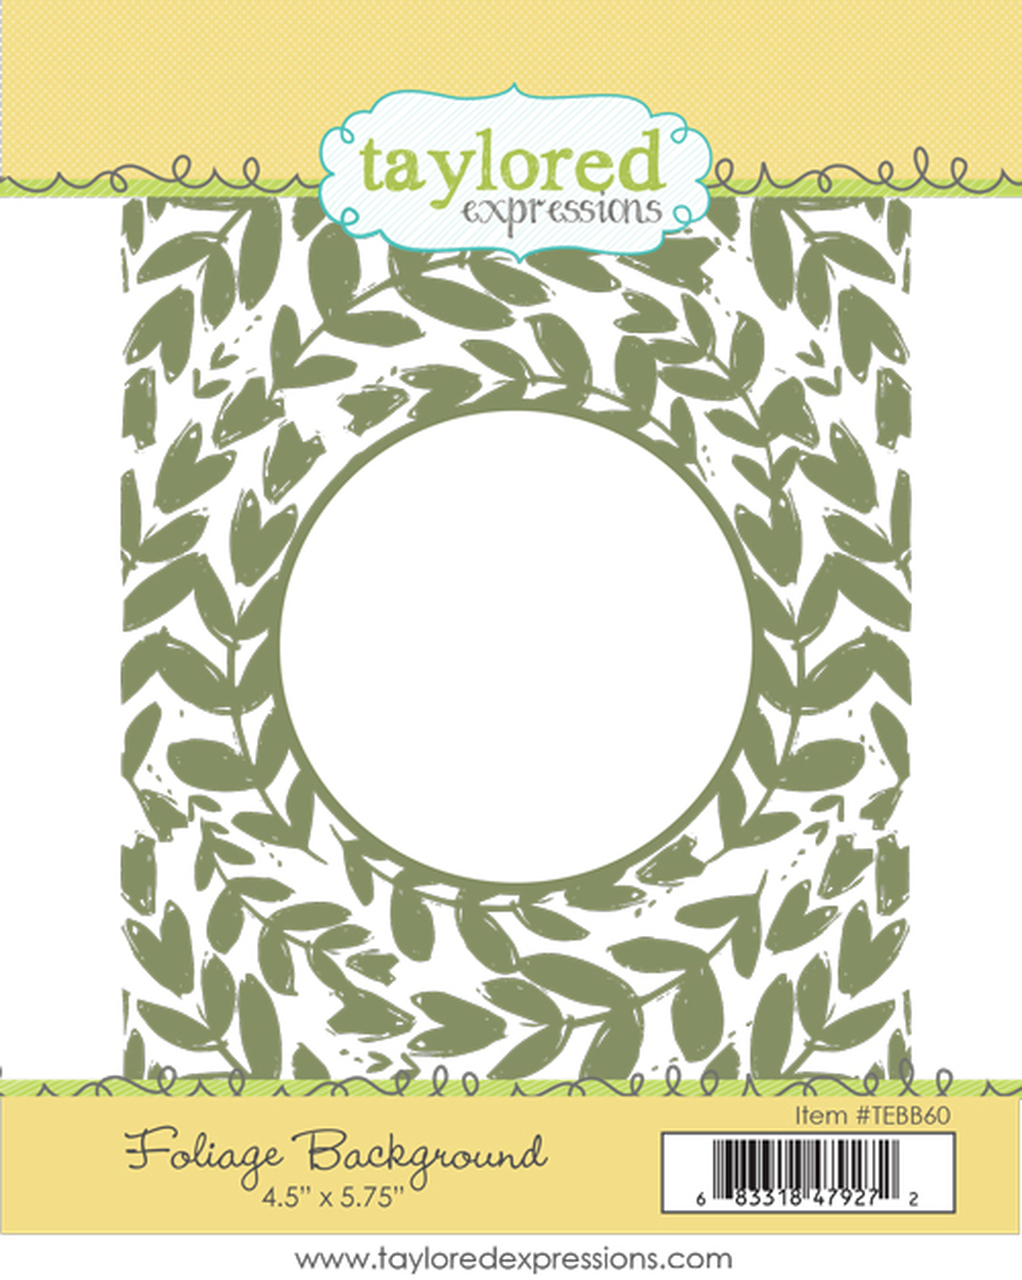 Taylored Expression - Foliage Background